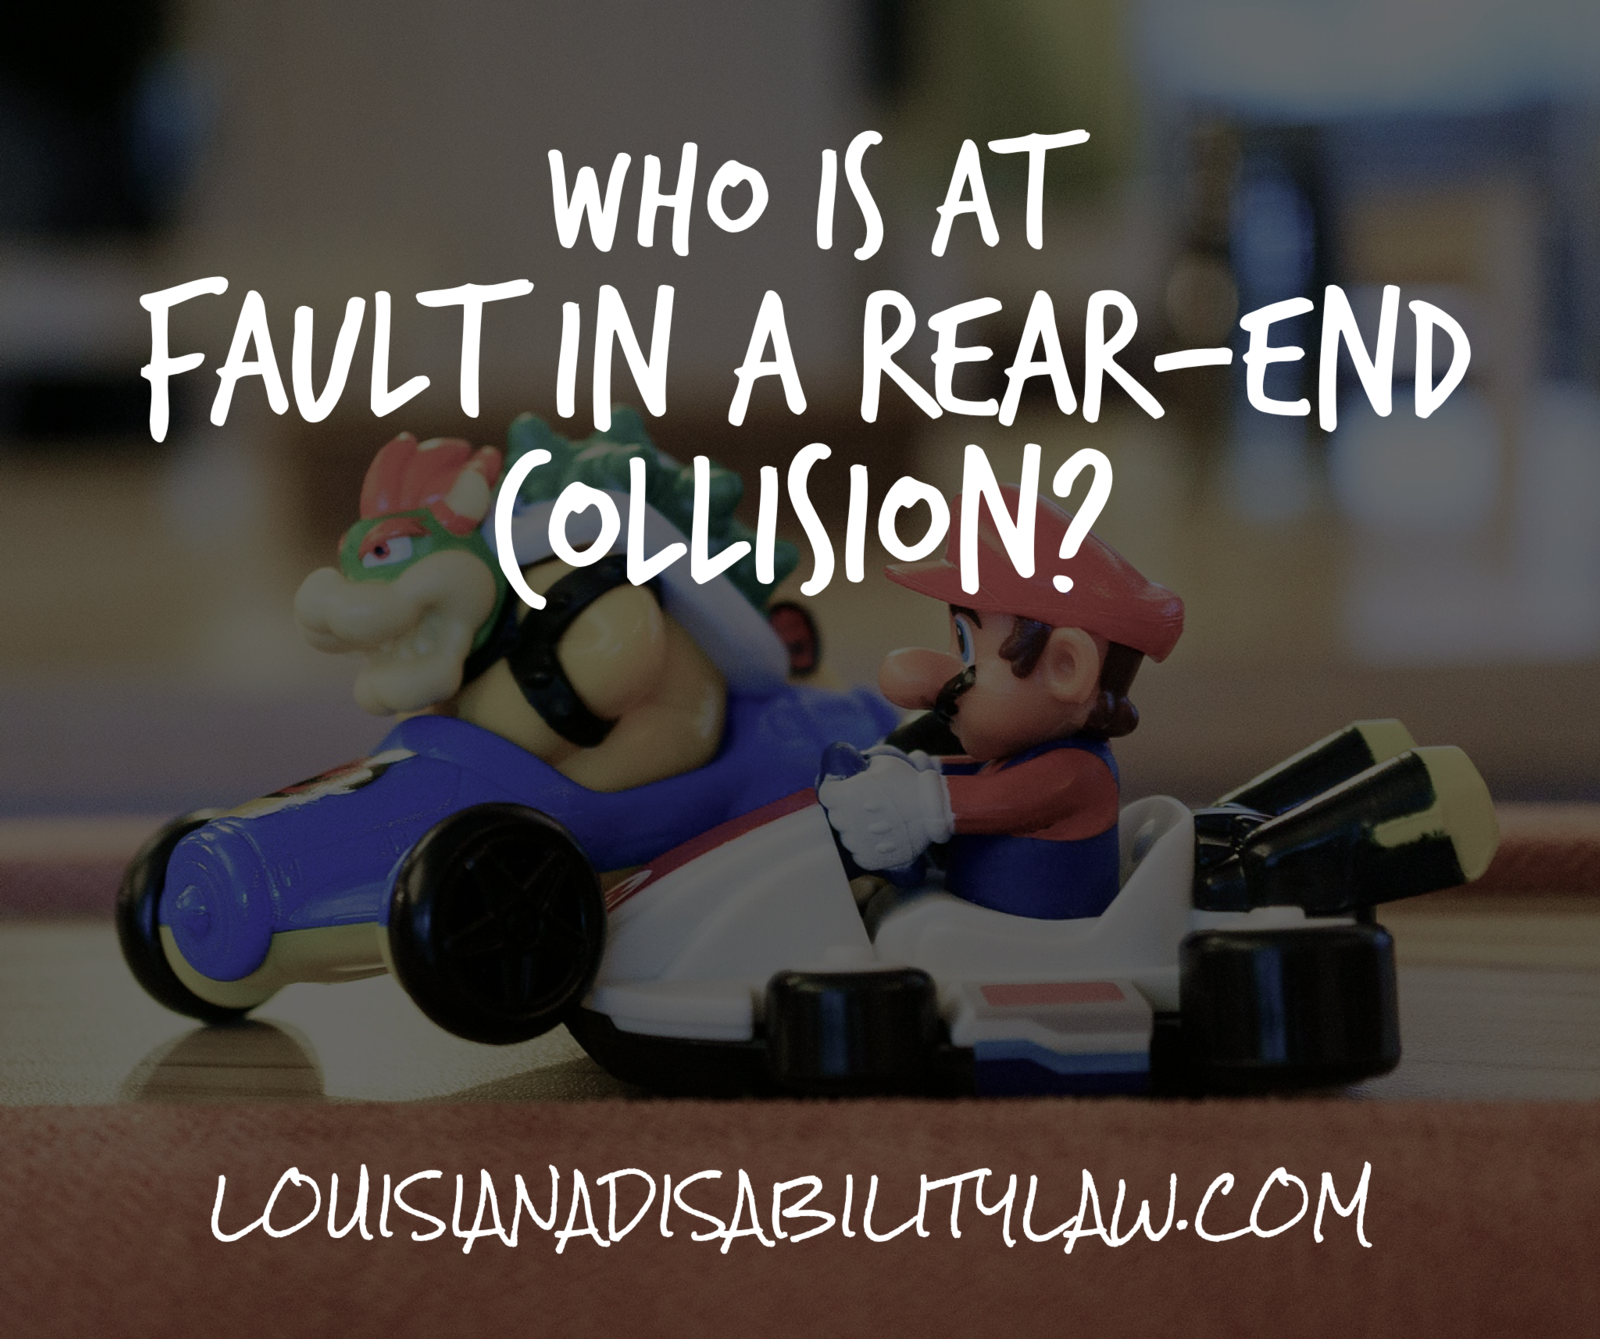 Who is at fault in a rear-end collision in Louisiana?